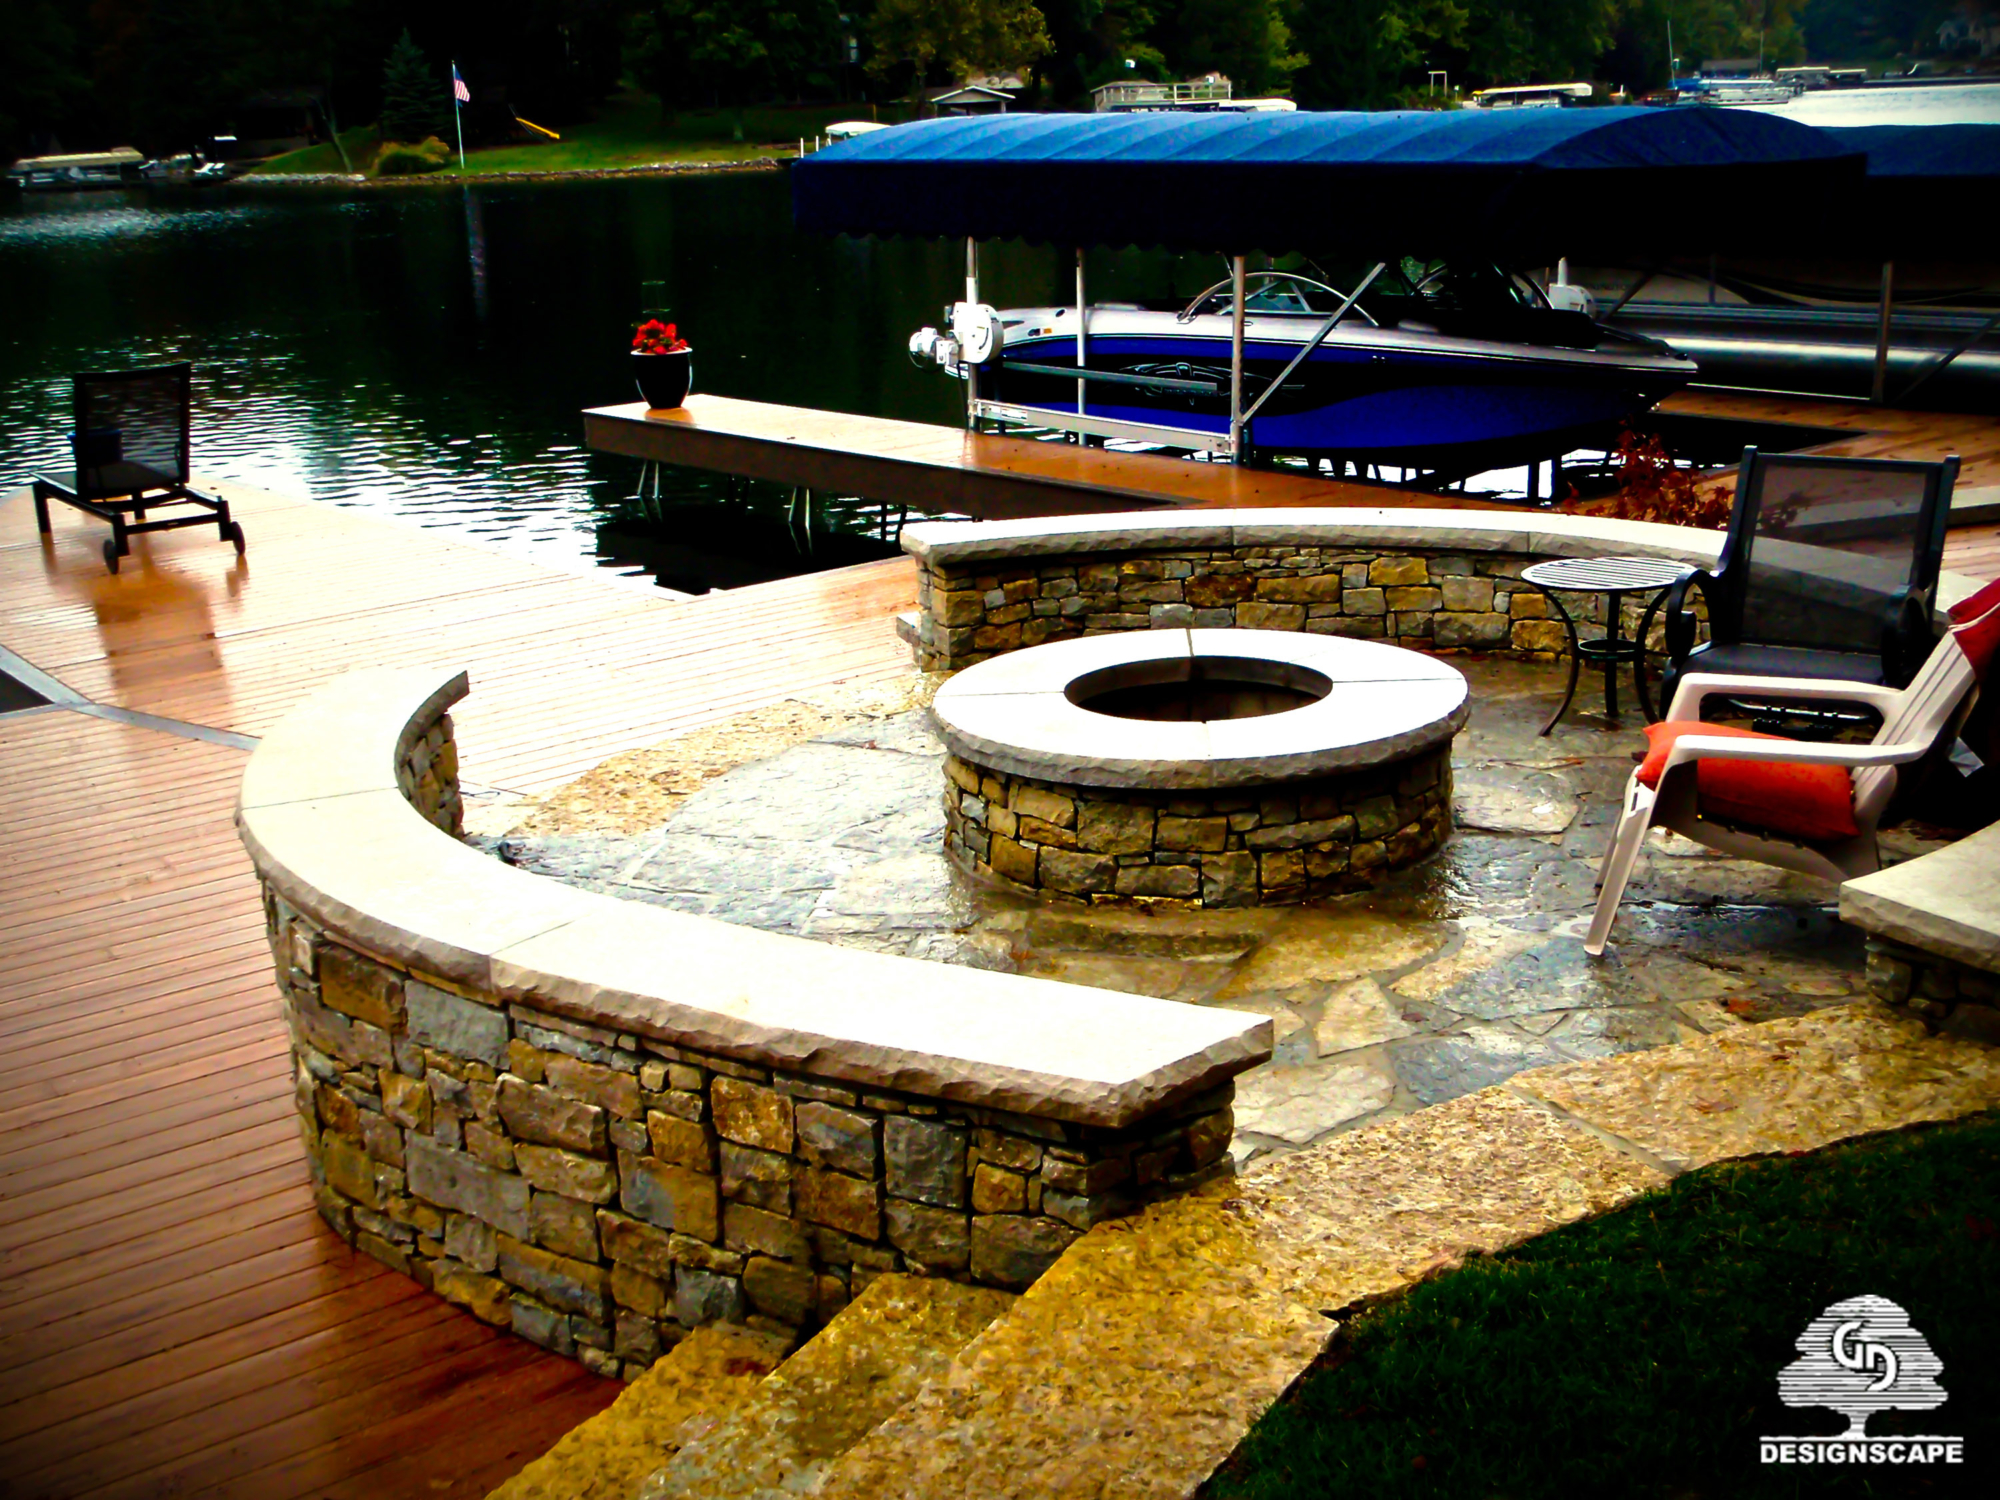 hardscape, lakeside, seatwall, stone wall, dock incorporated design, gathering space